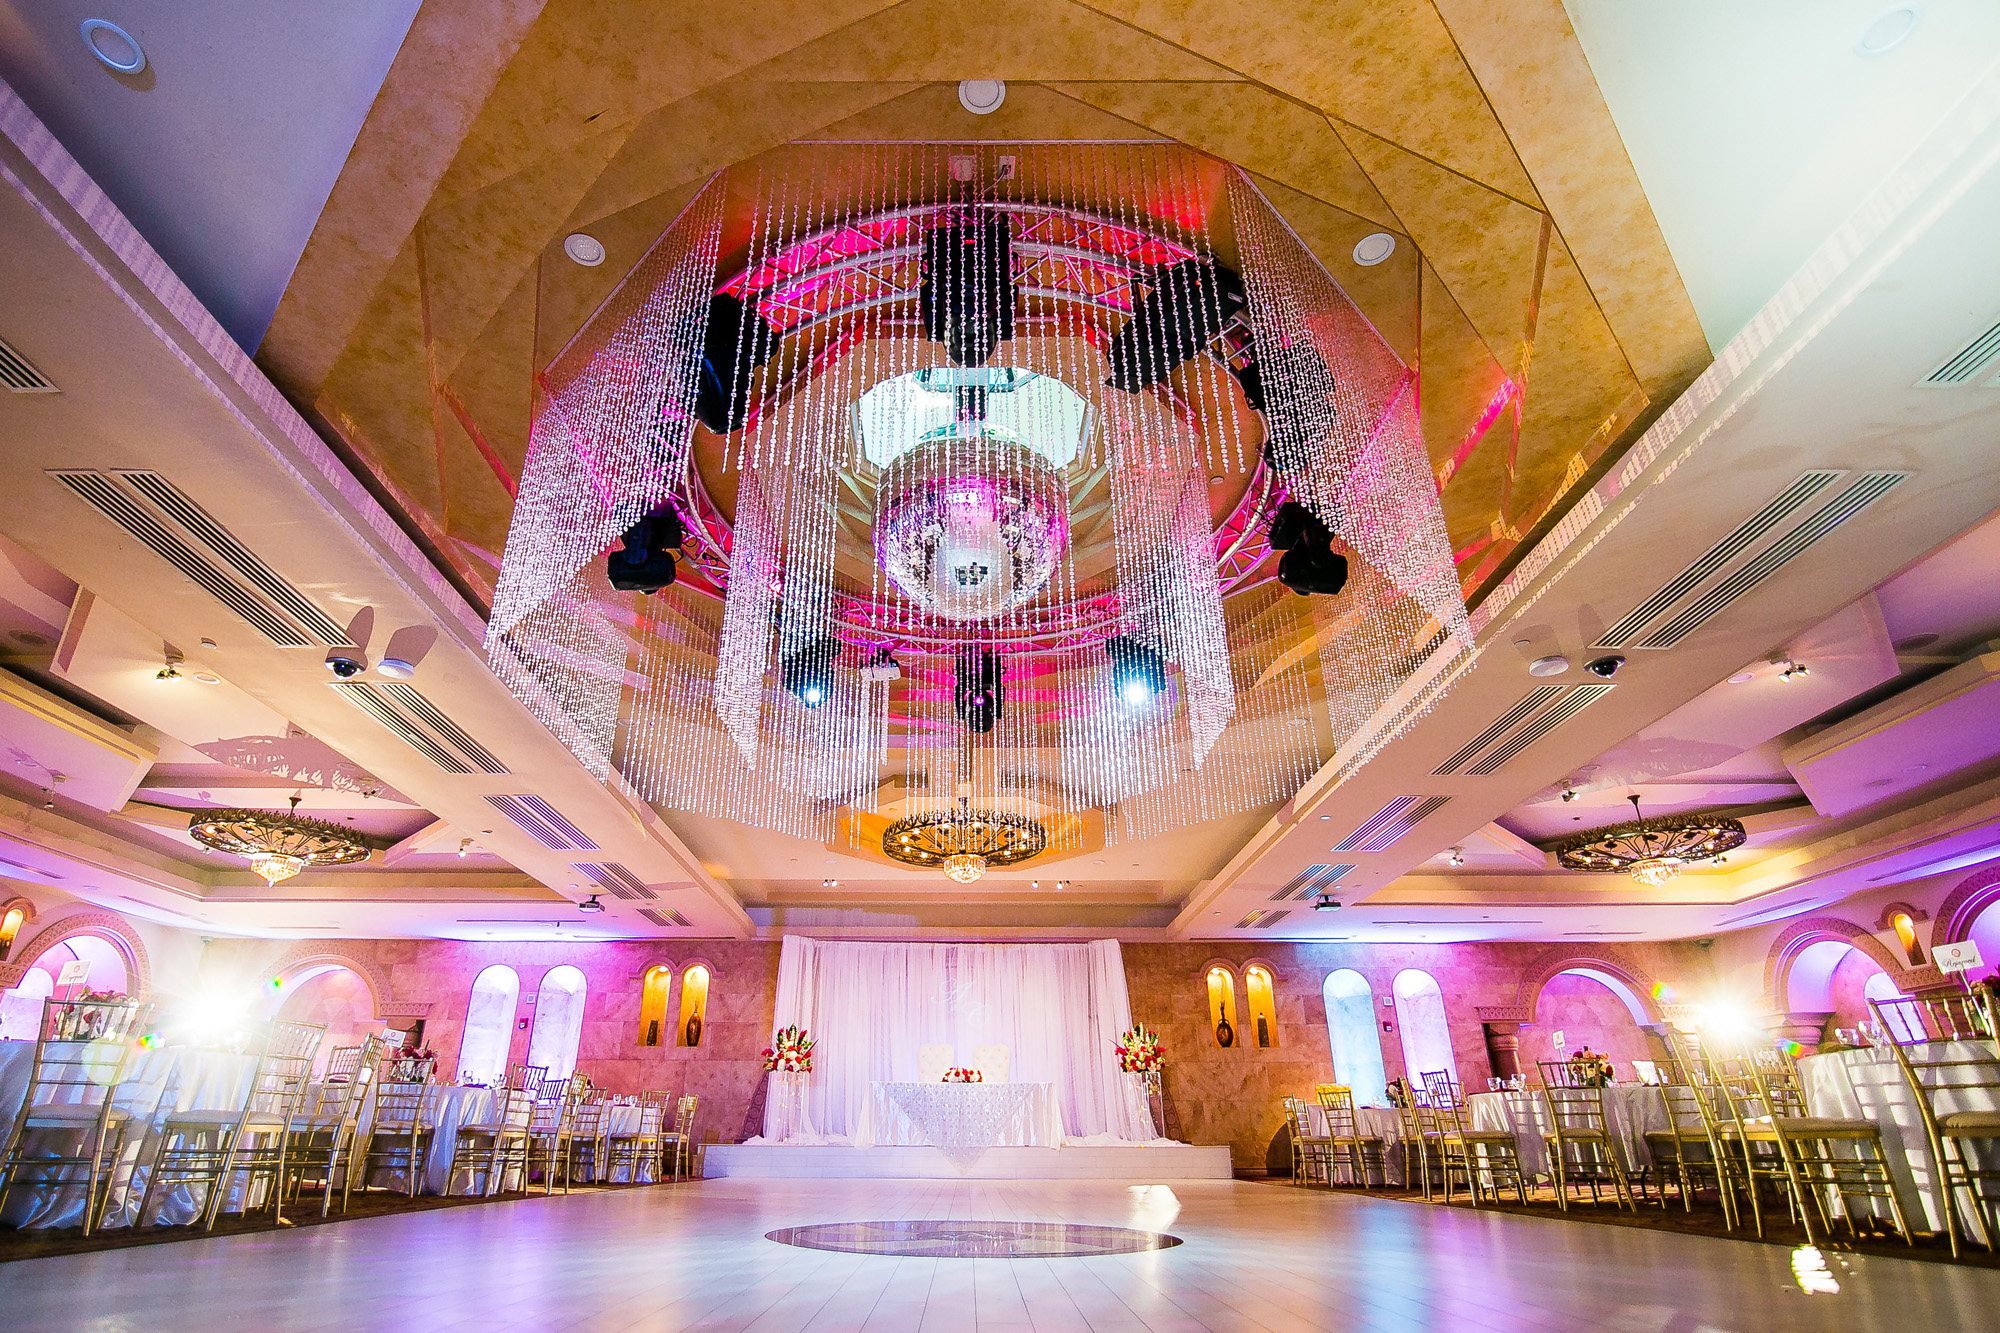 Largest Event & Wedding Venue in N. Hollywood, CA - Le Foyer Ballroom